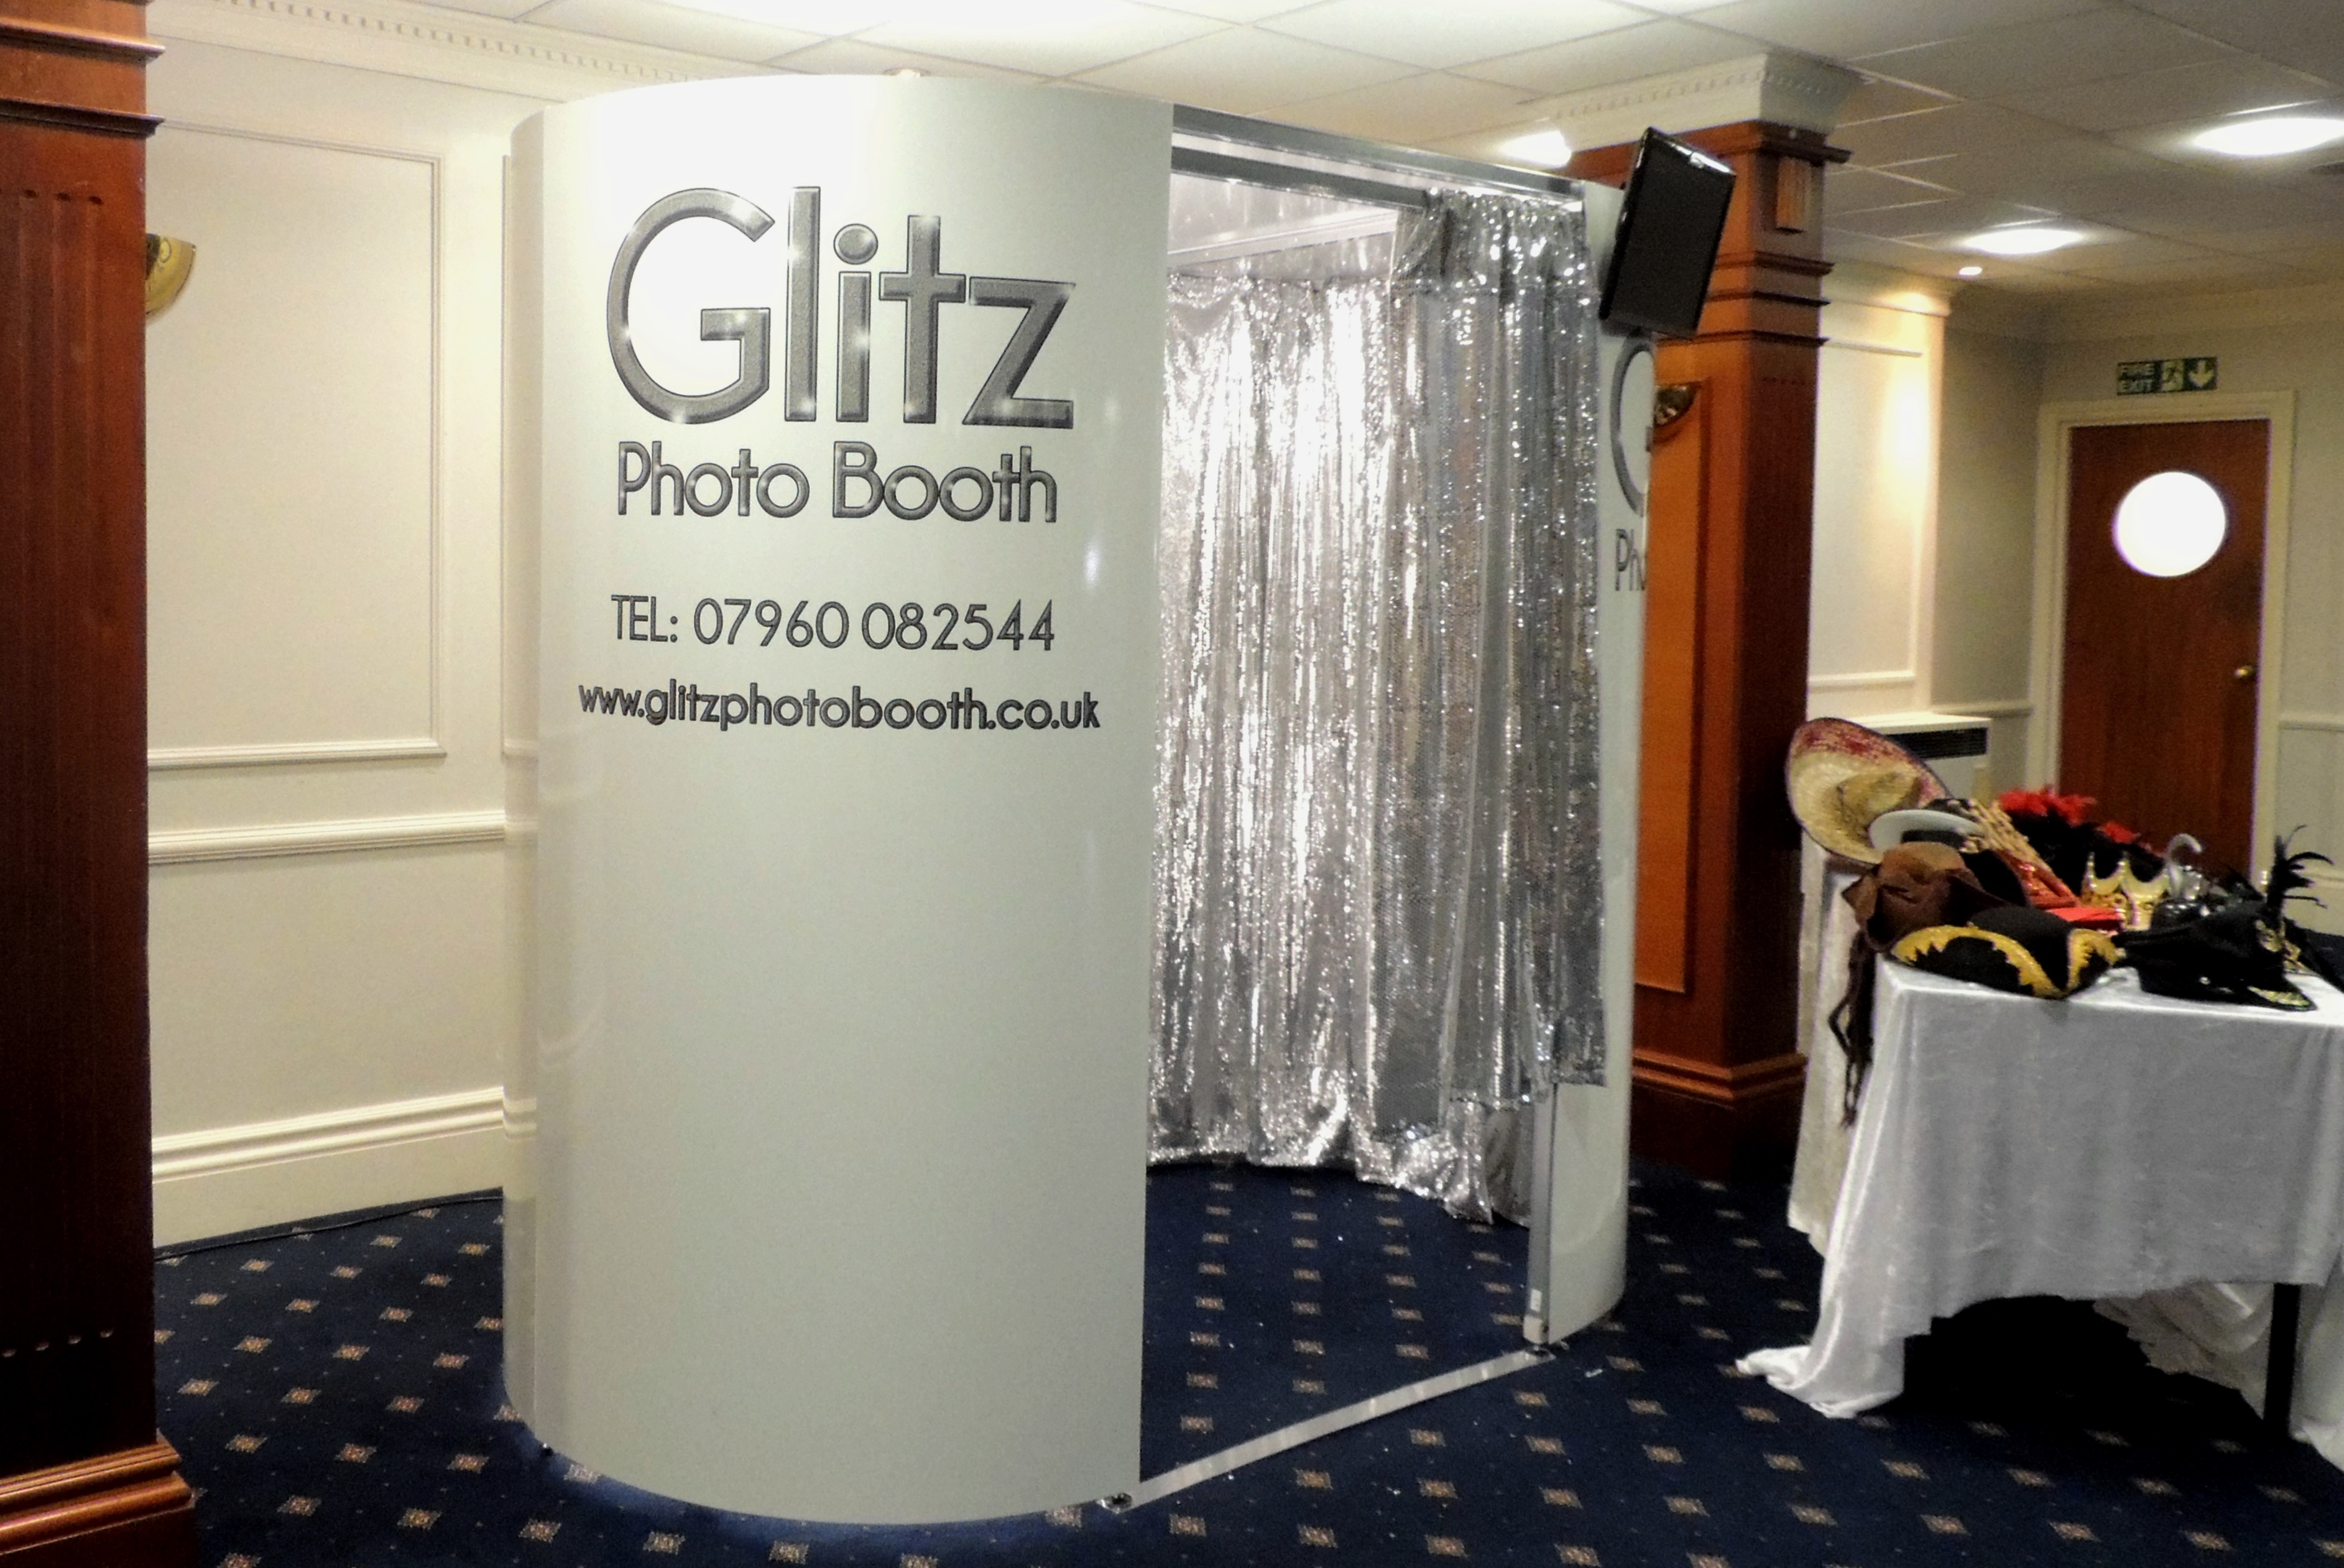 White Booth with Silver Curtains